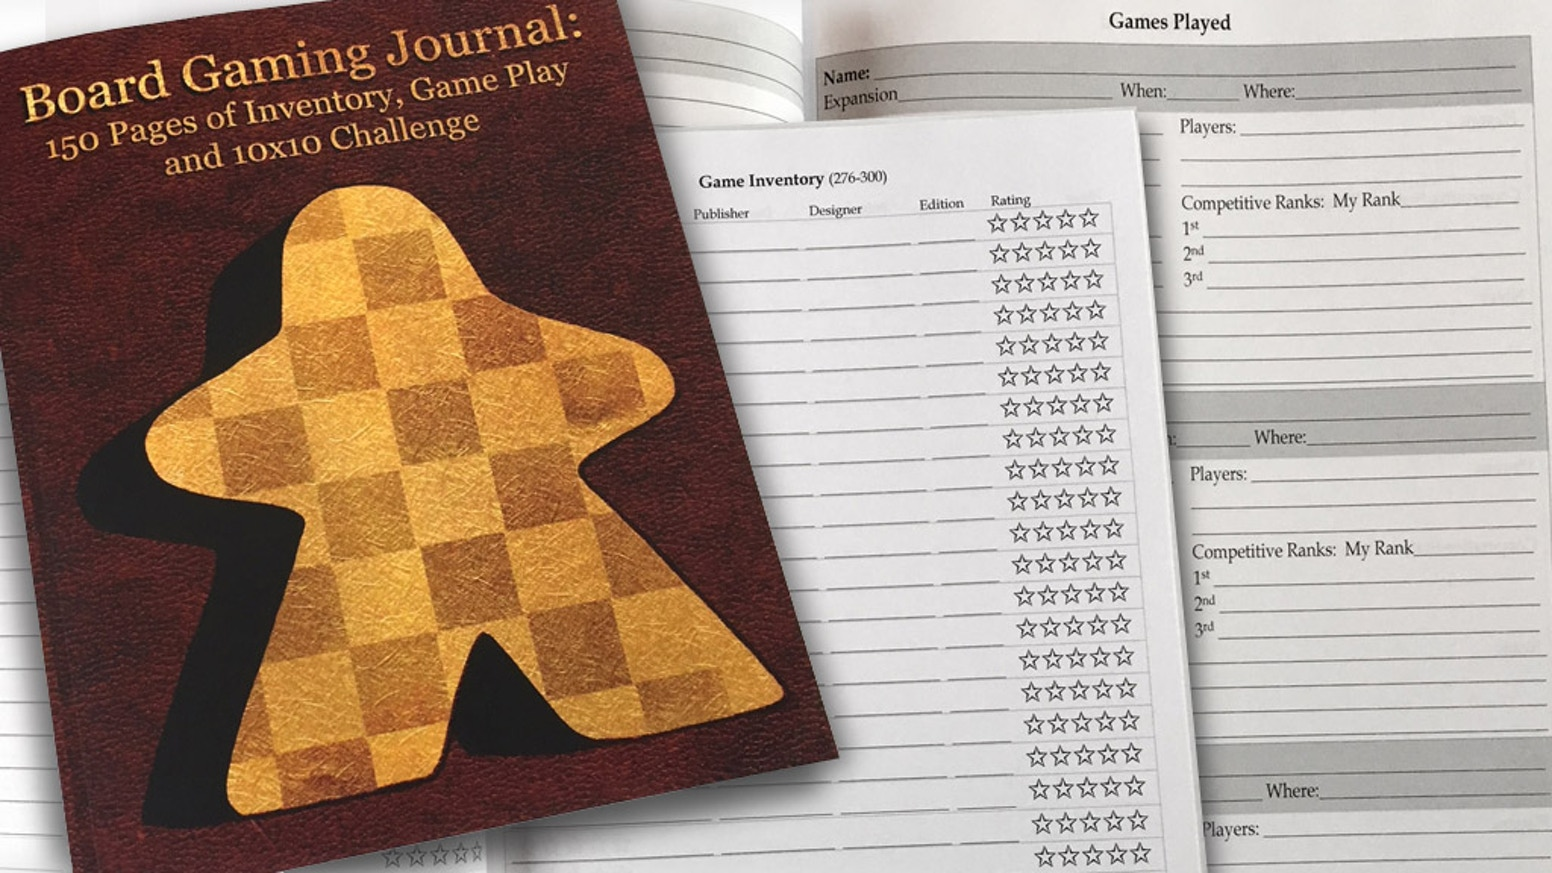 A journal designed for board game enthusiasts.